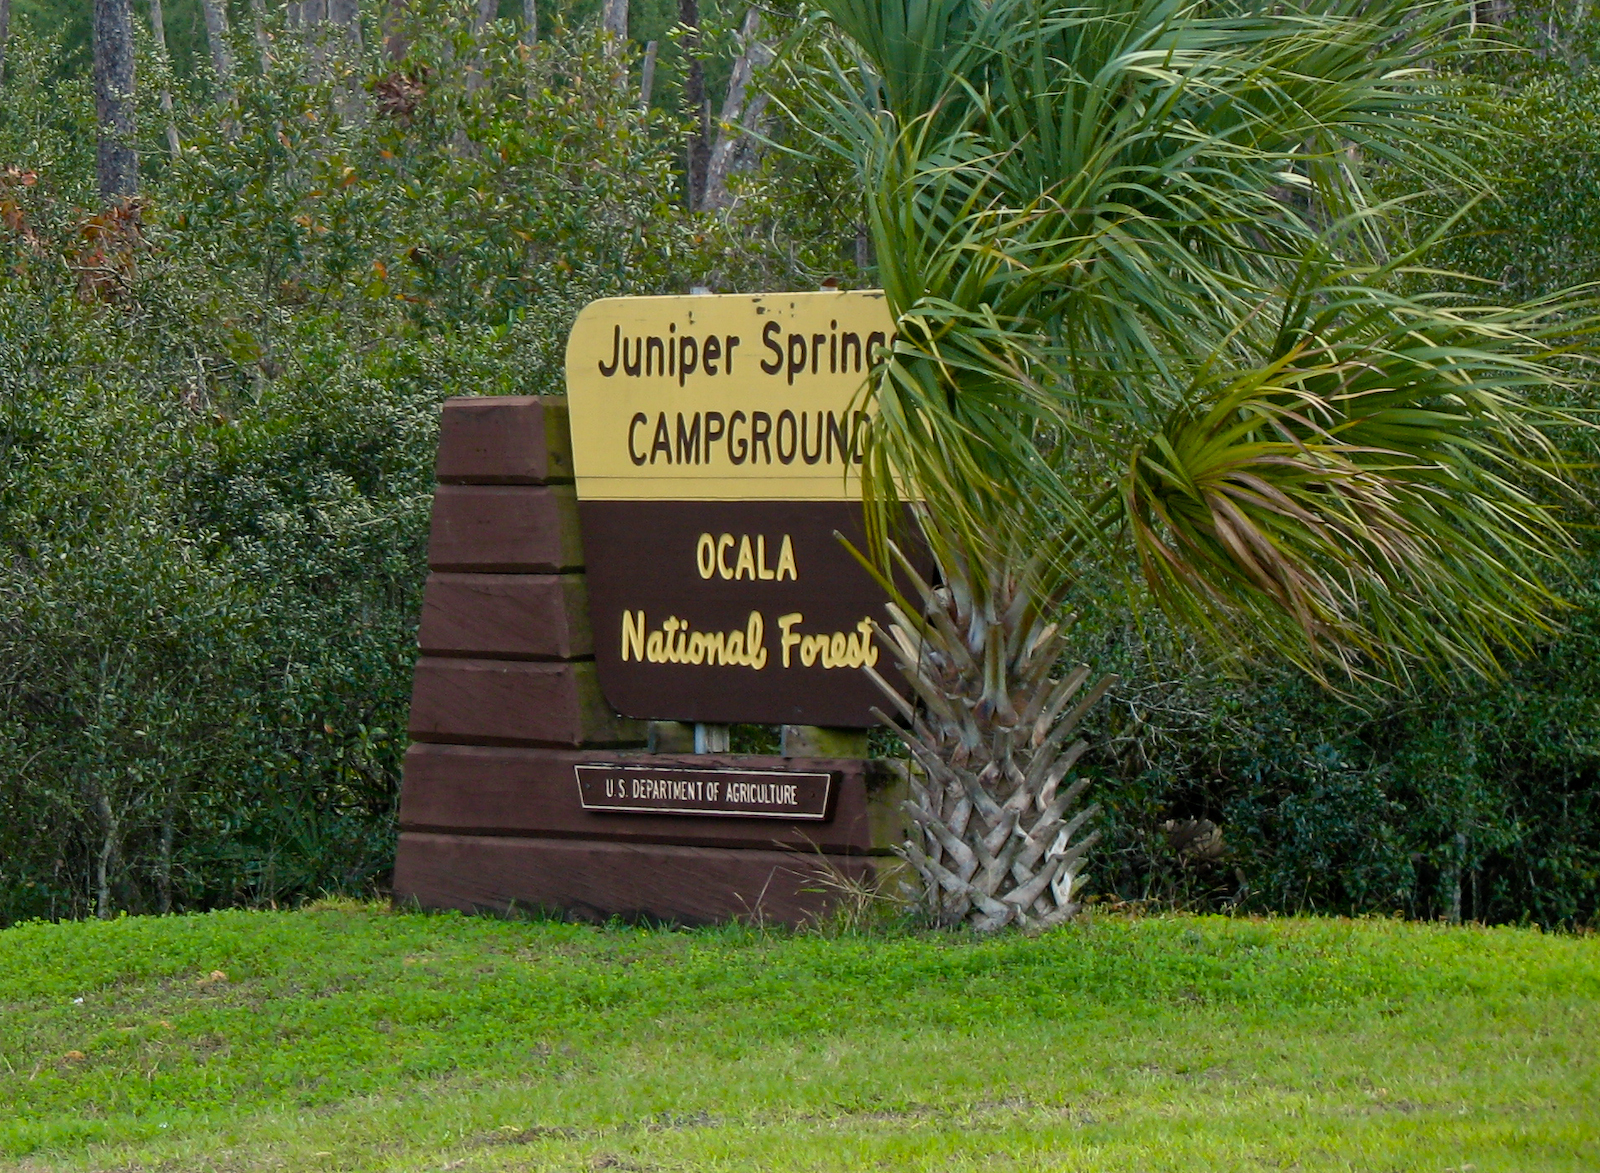 Juniper Springs Campground sign